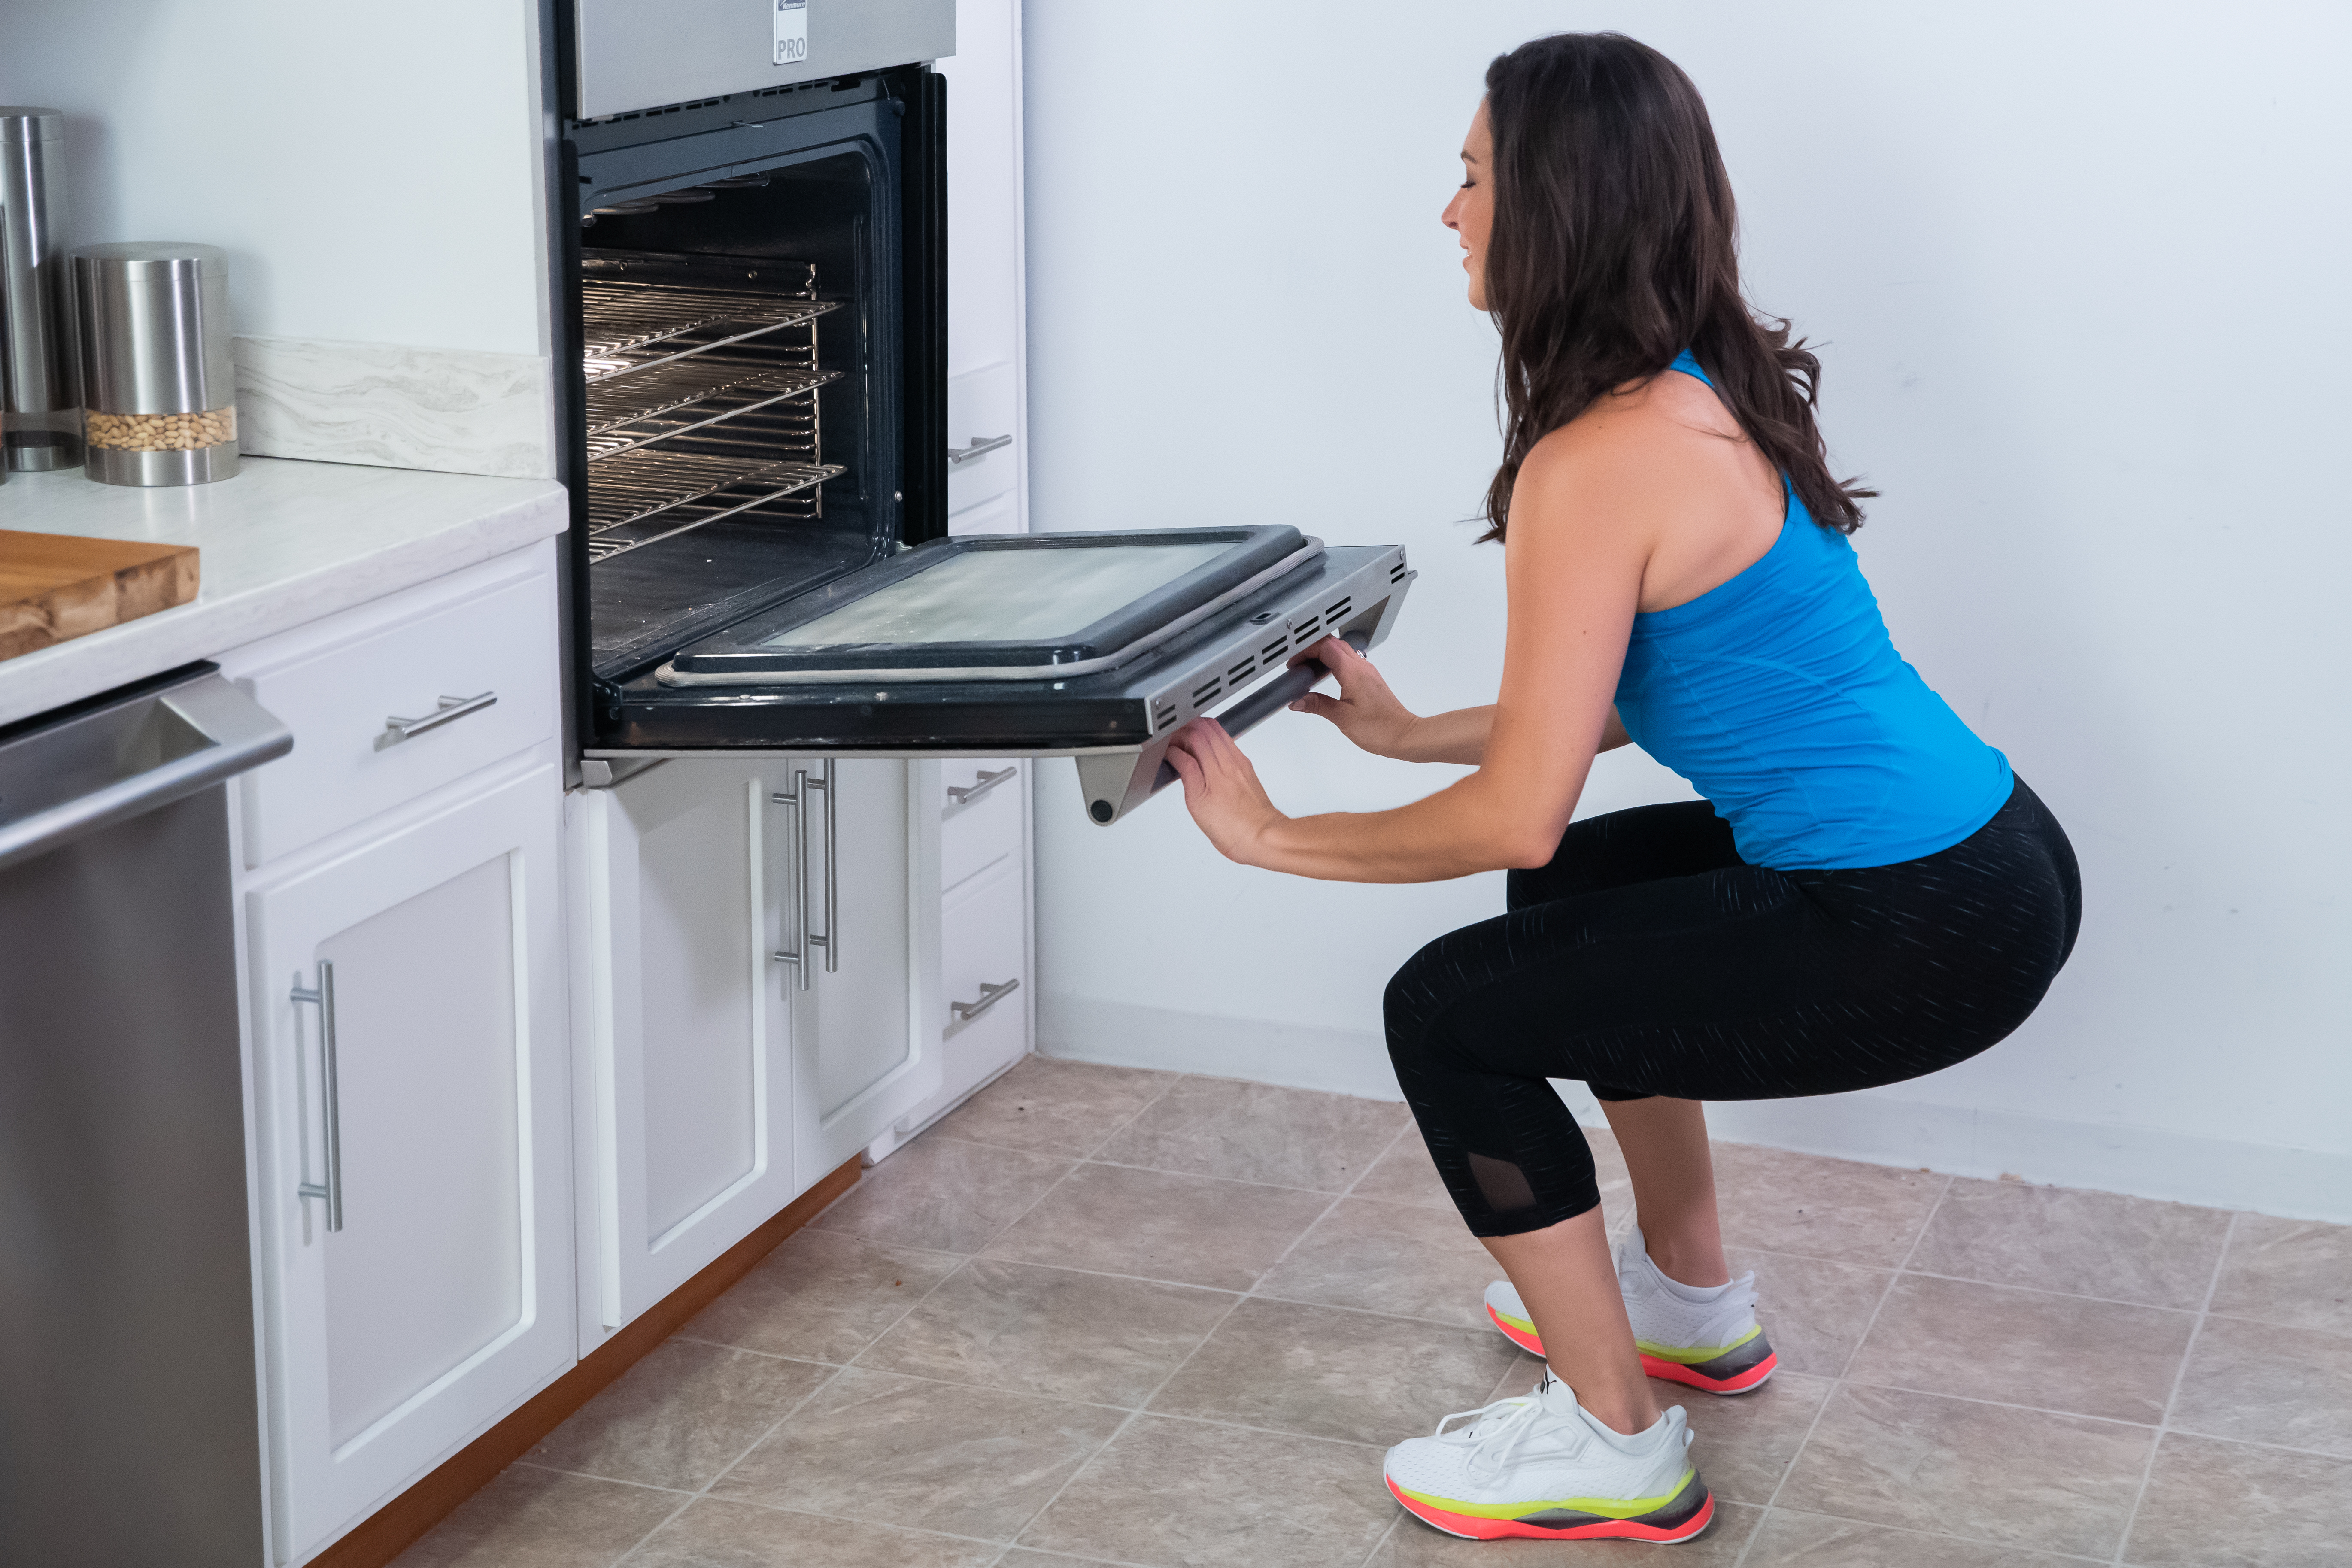 Don't just bend down to place items in the oven. Try this squat exercise instead when opening and closing the oven door. Remember to gently place your fingers on the door; never use it to pull yourself up.